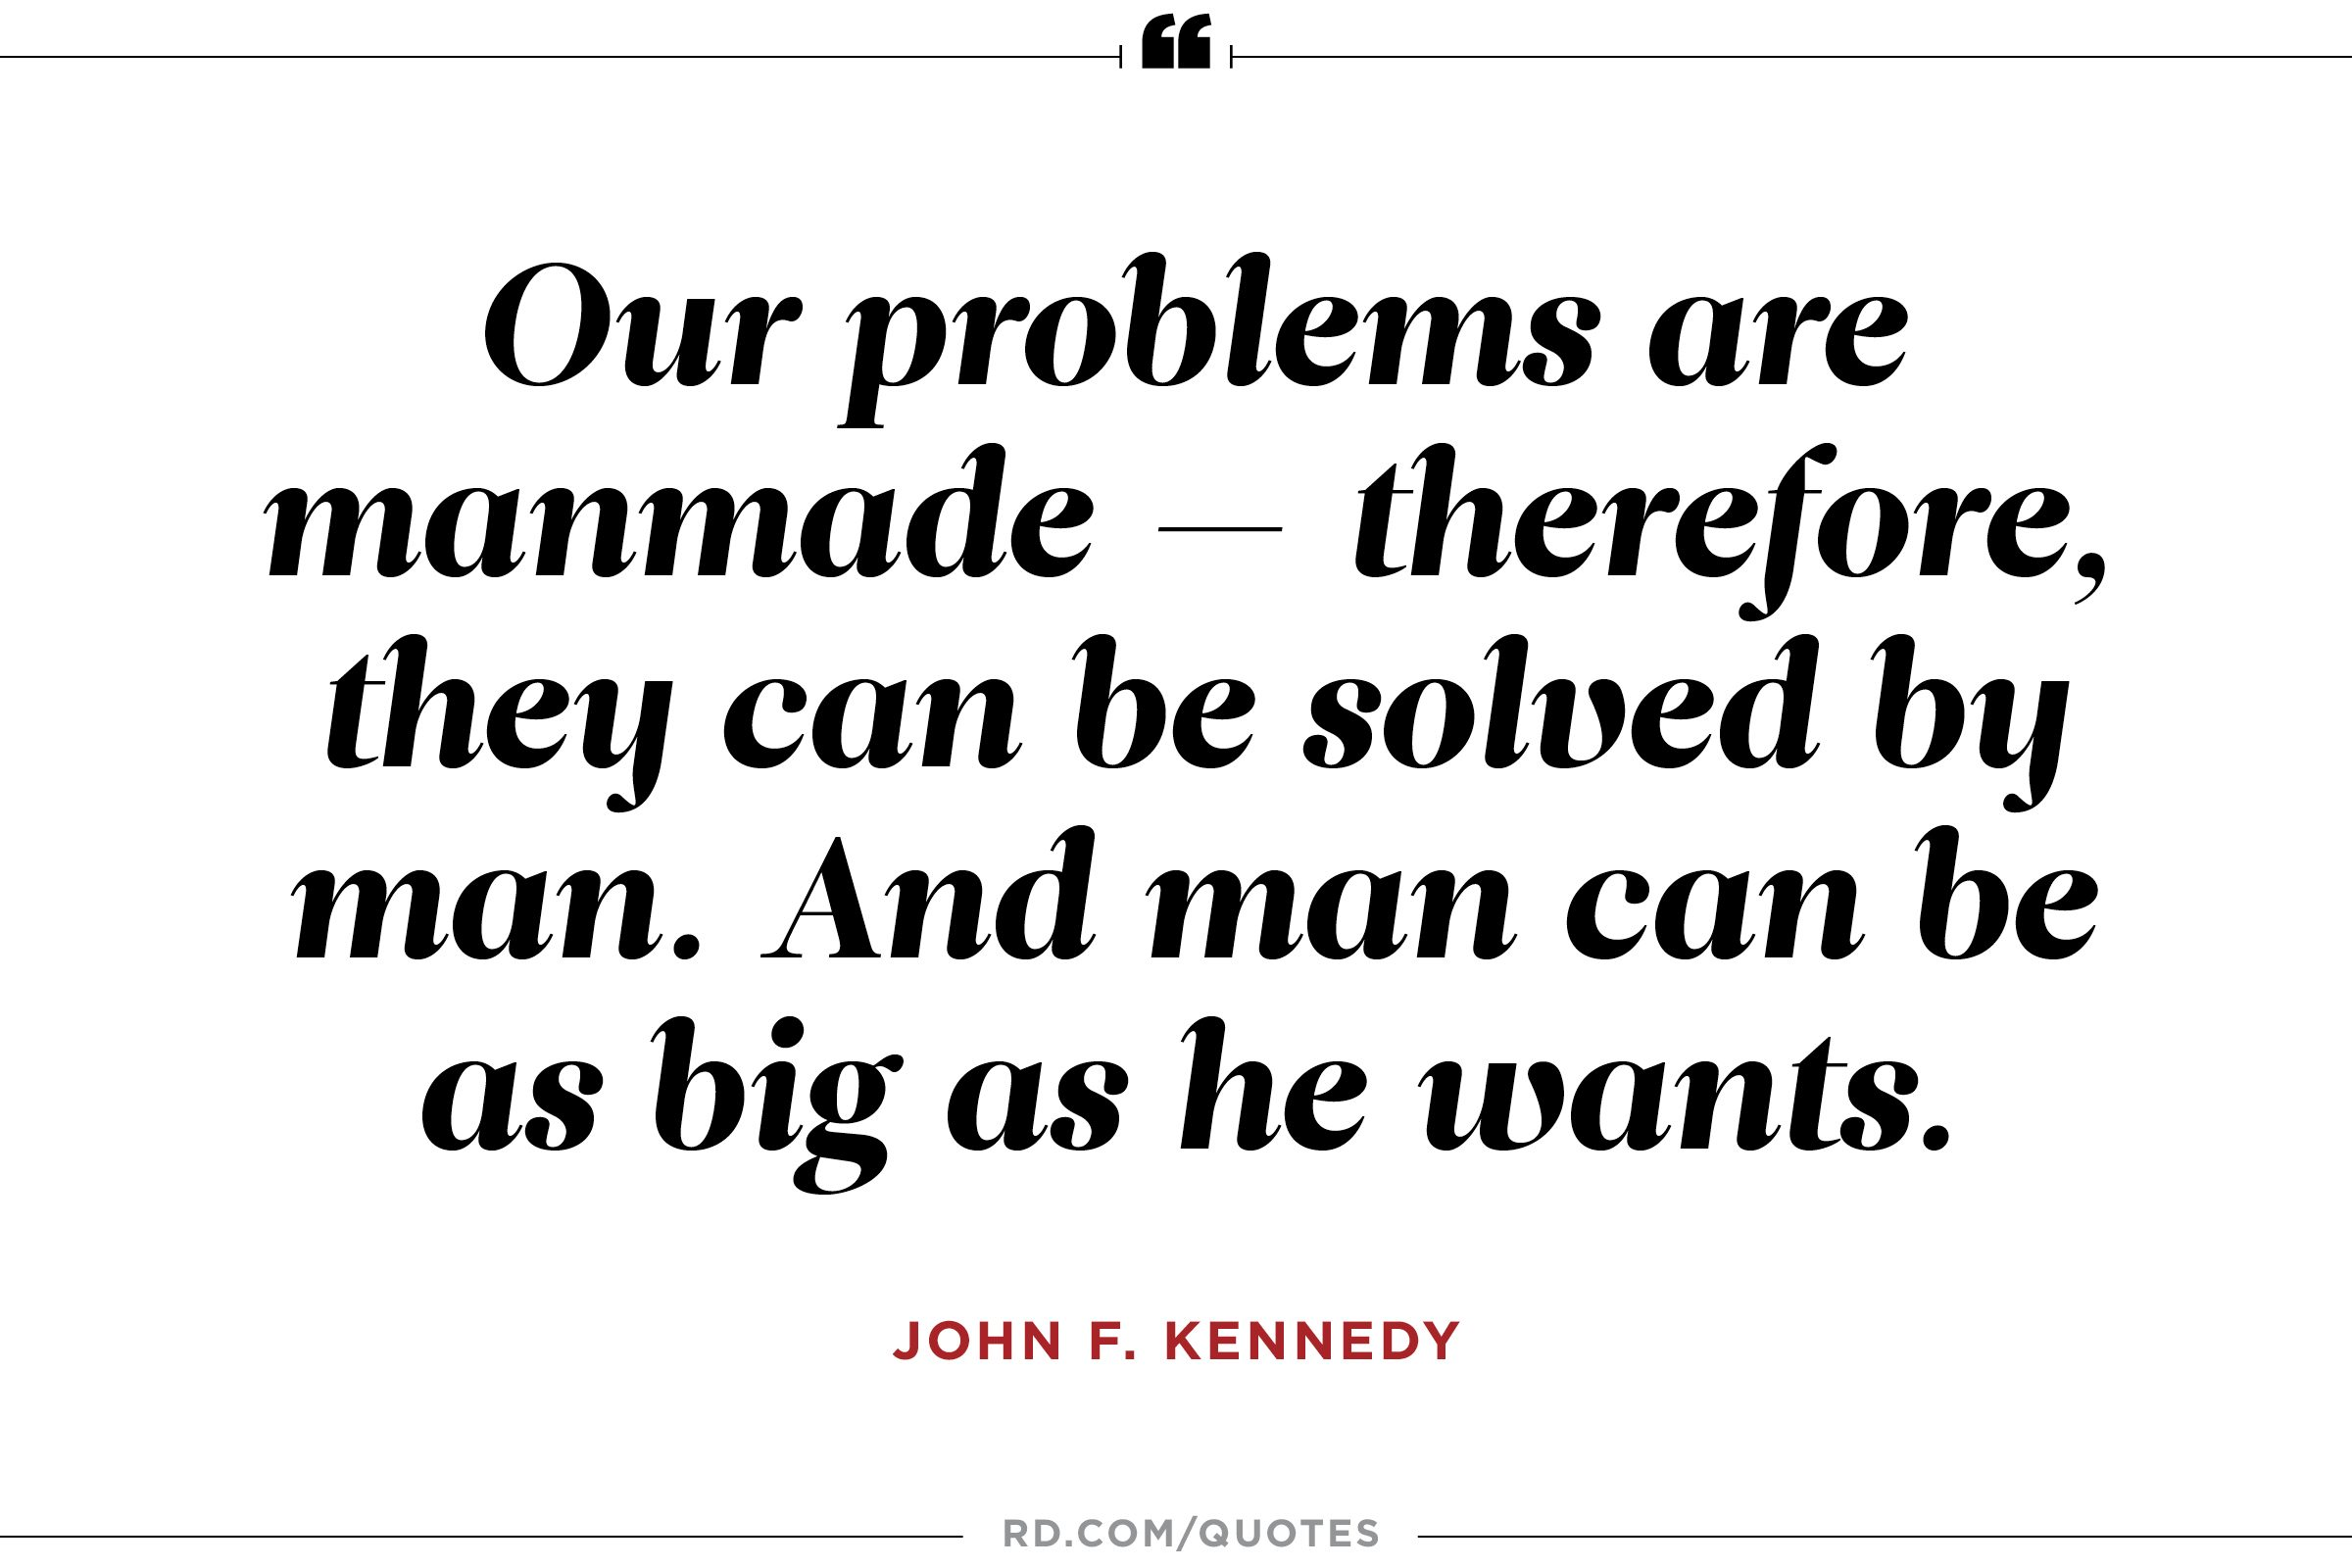 JFK on solving big problems